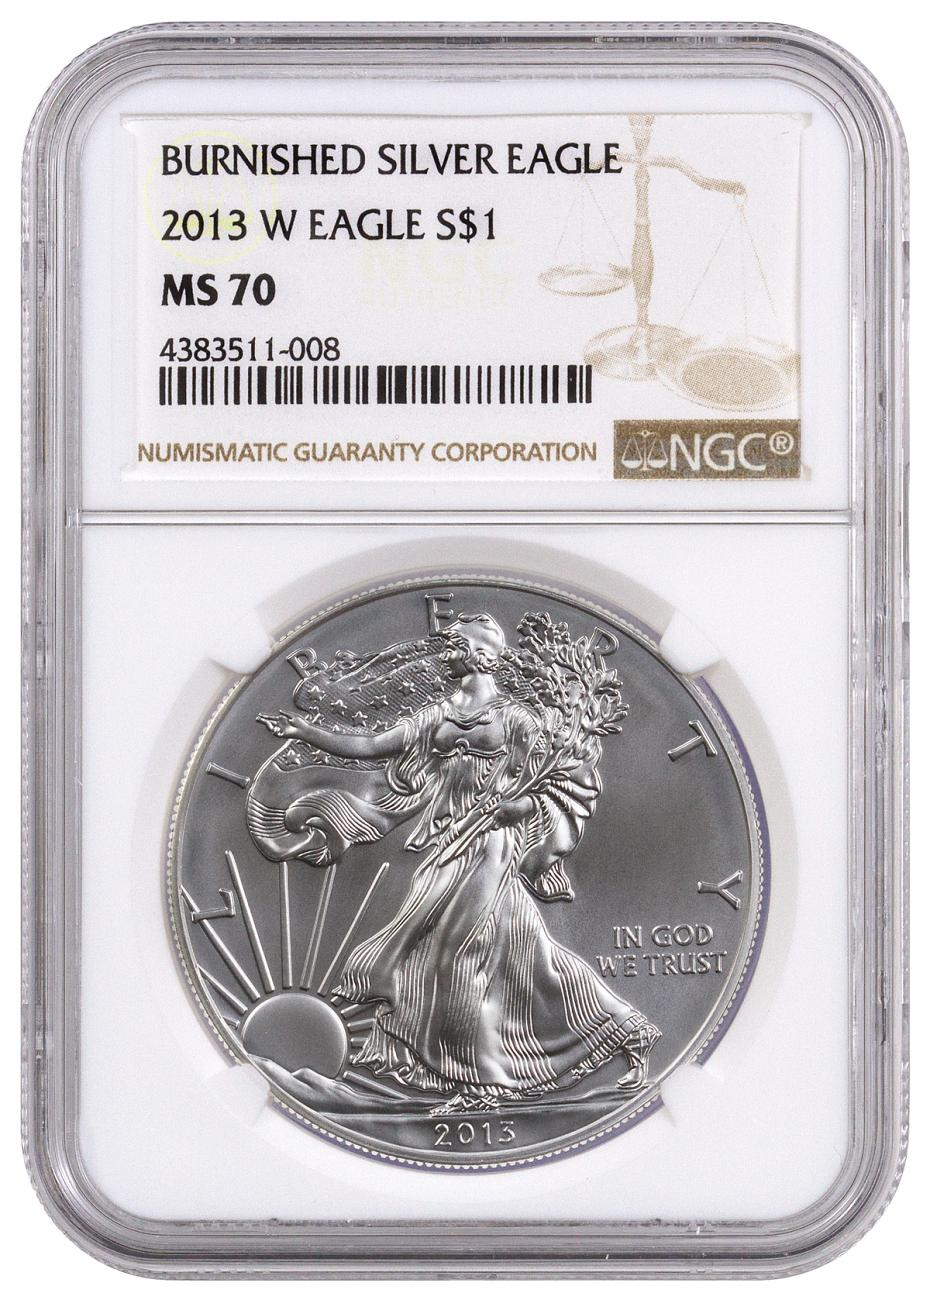 2013 W Burnished Silver Eagle Ngc Ms70 Moderncoinmart